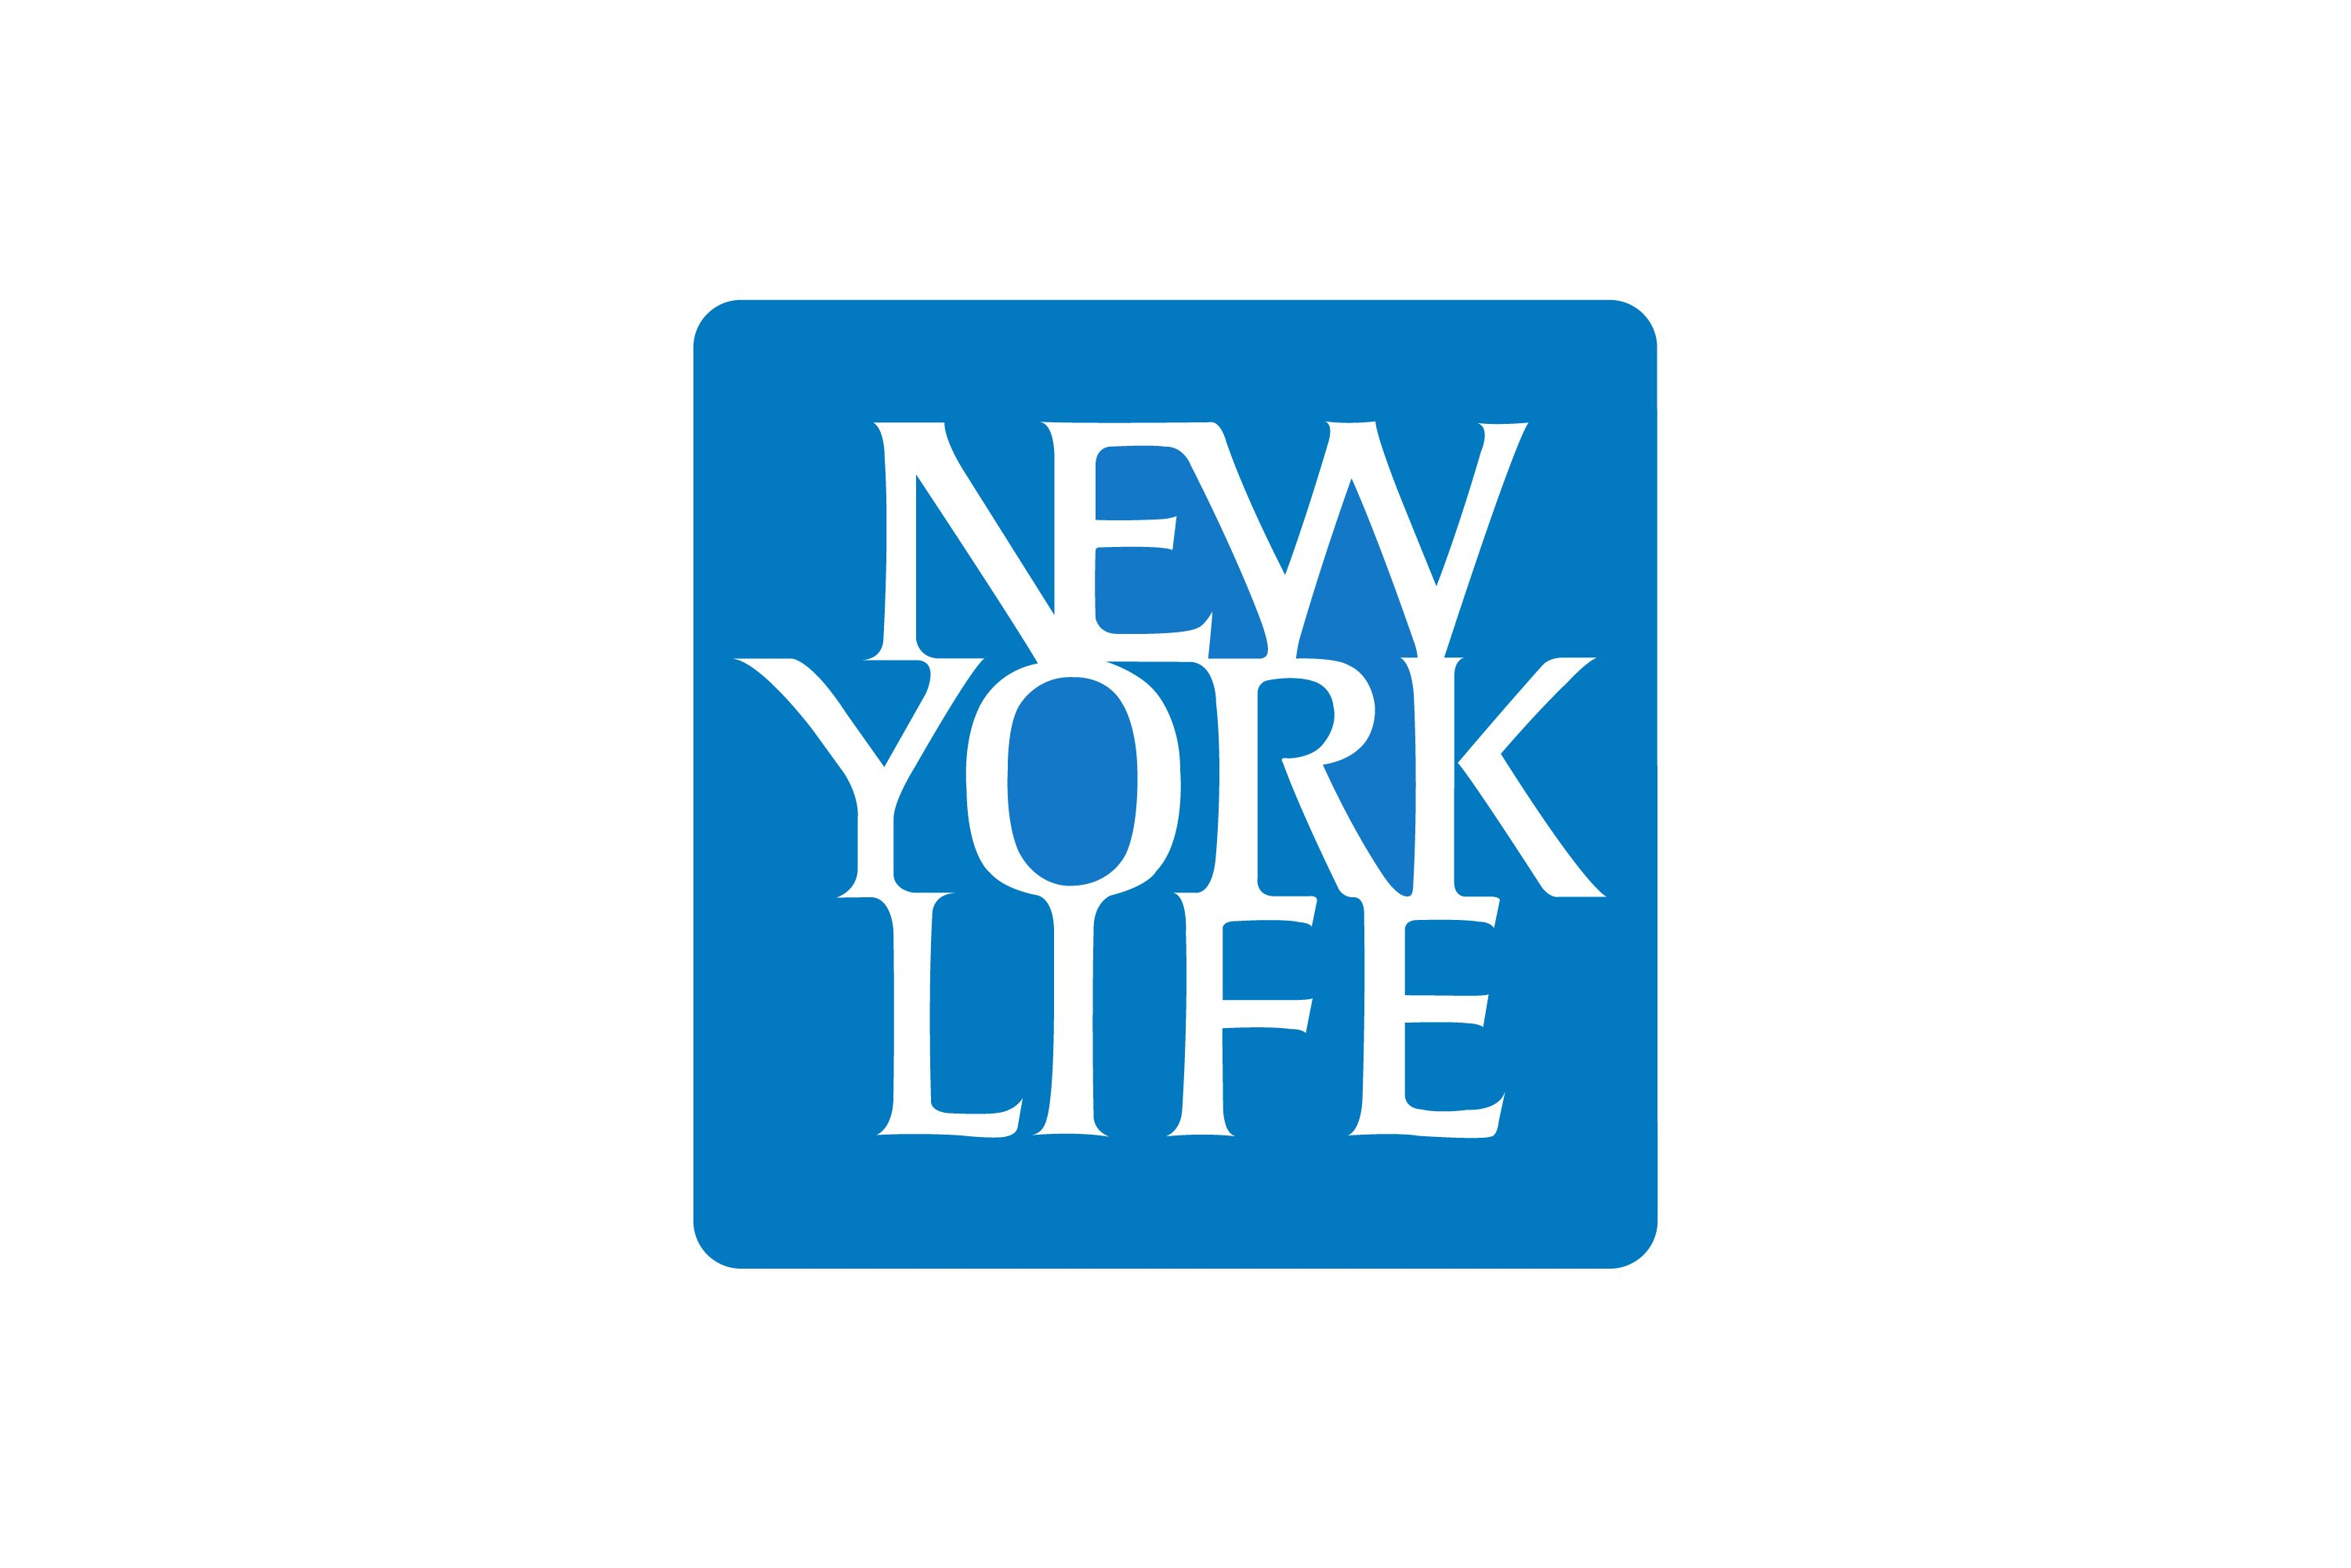 New York Life Insurance Company by Lippincott (With images